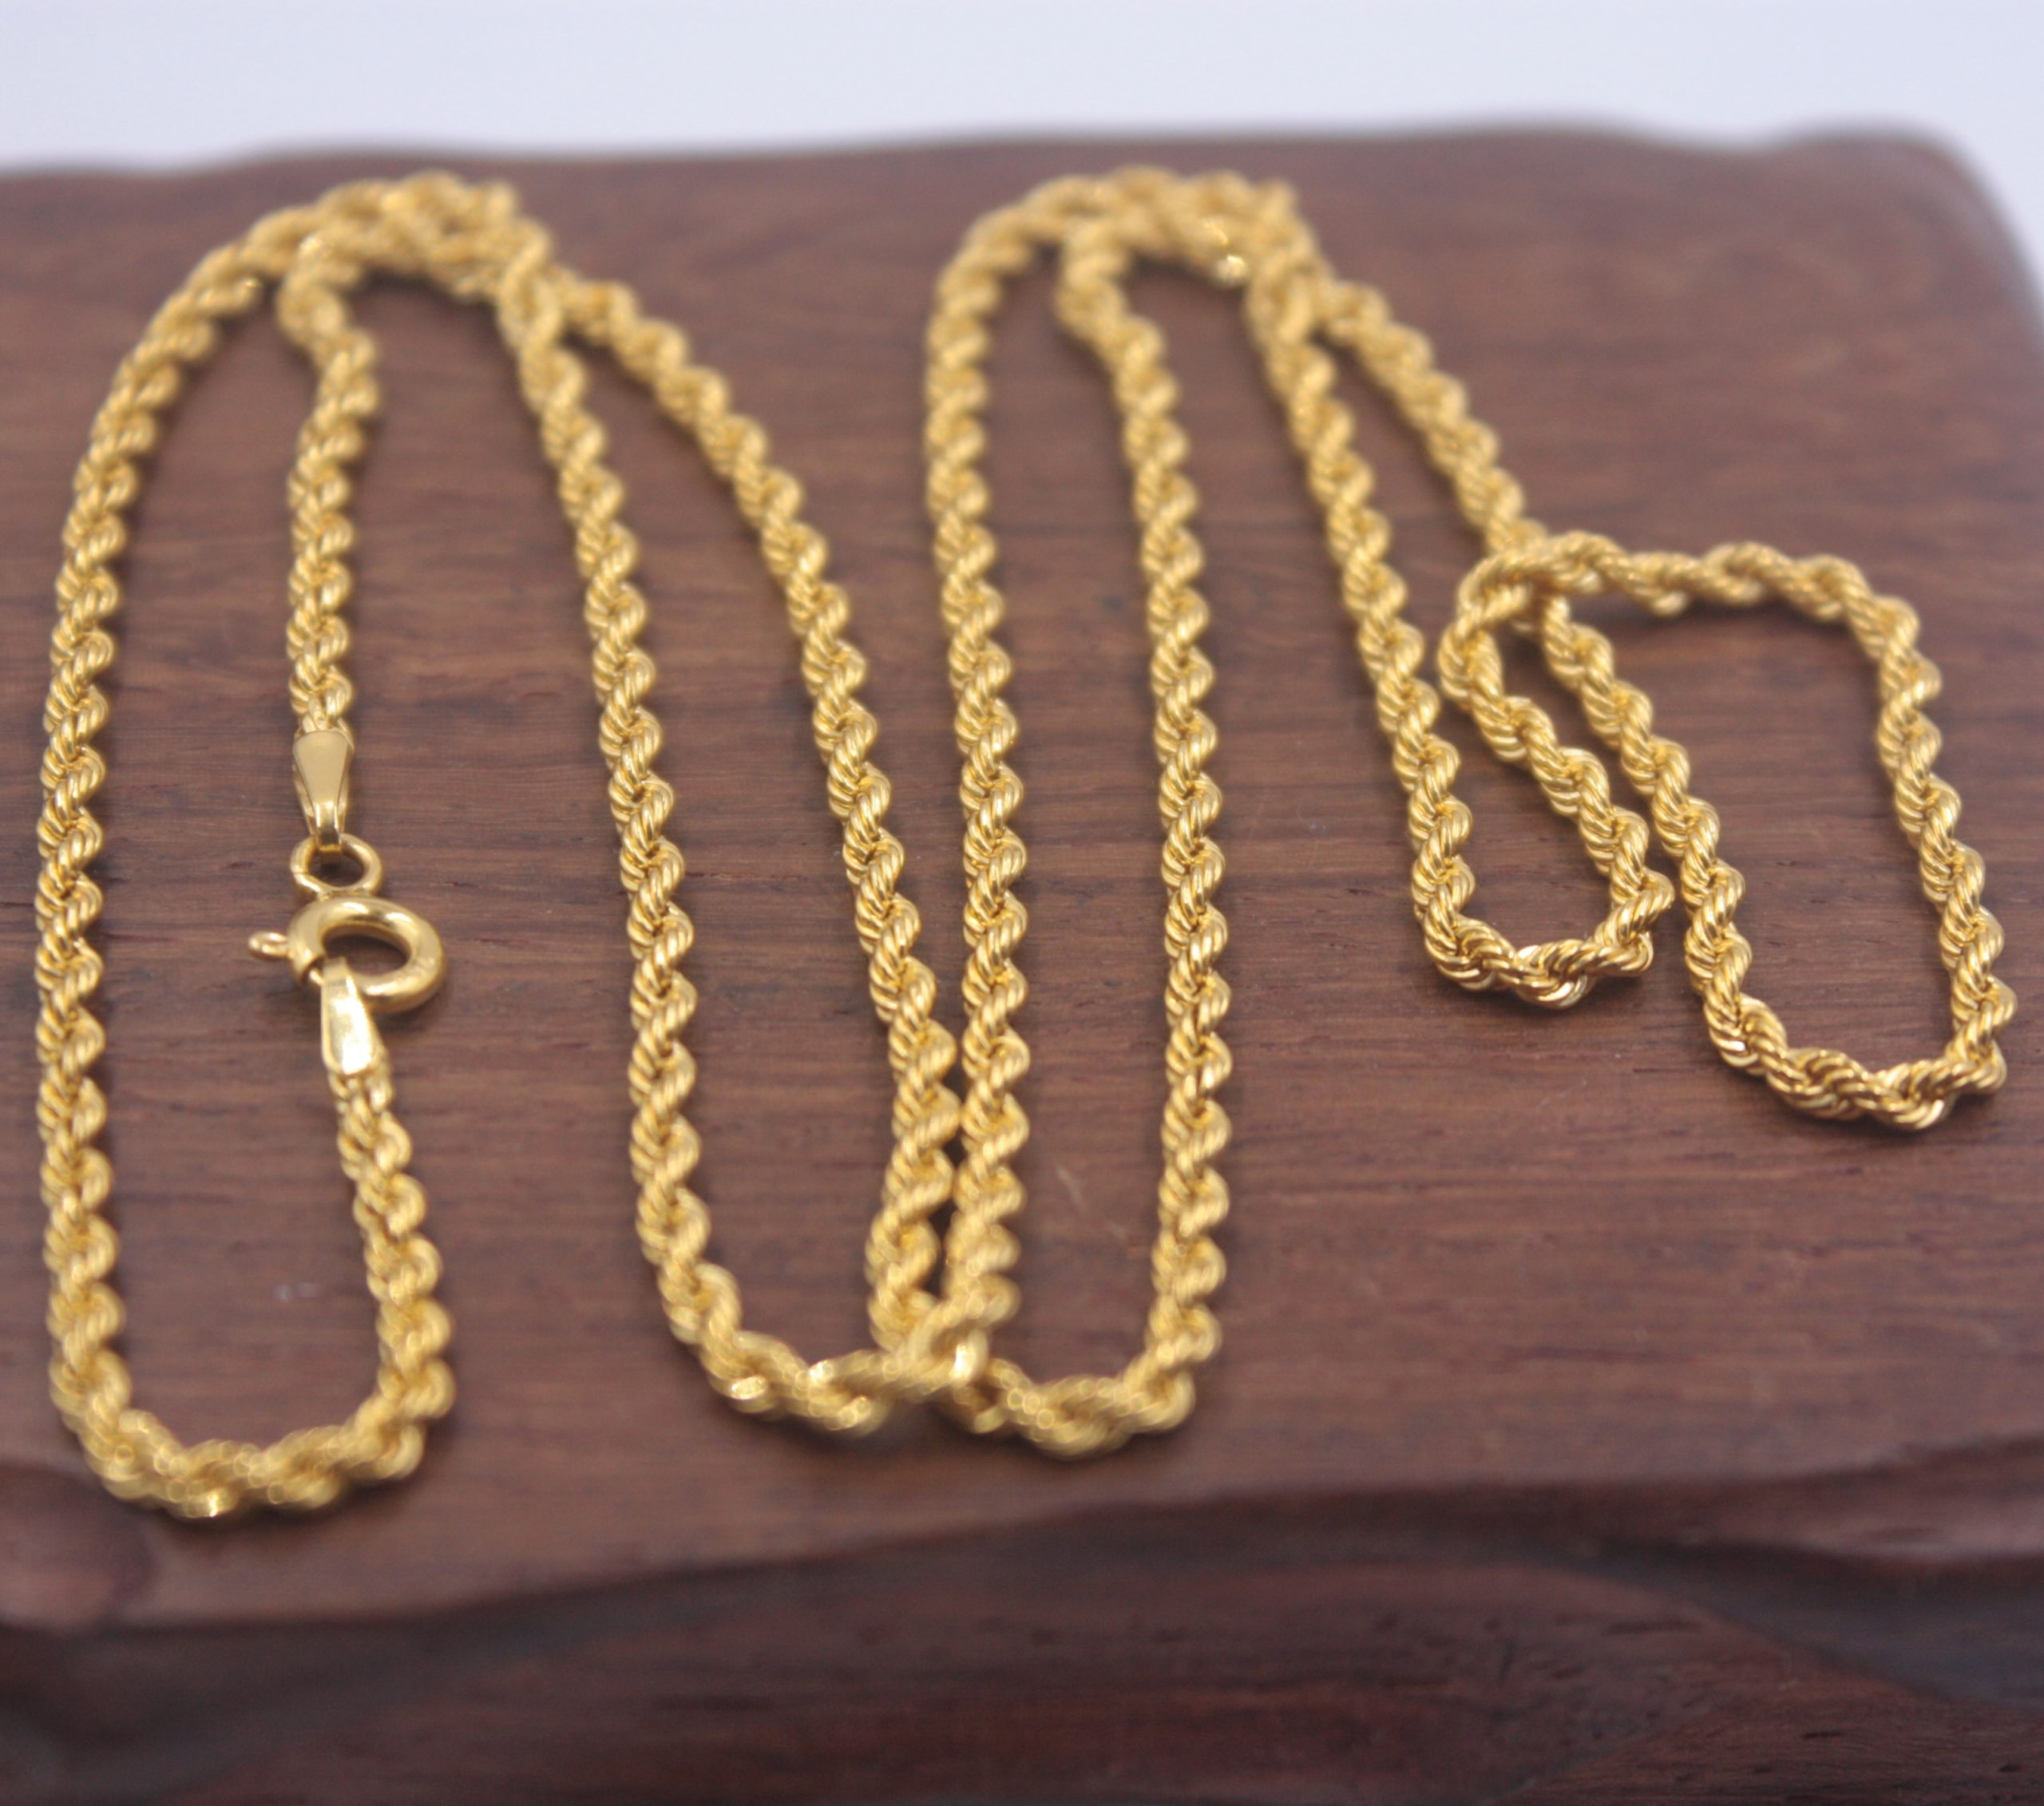 Pure 18k Yellow Gold Chain 2mmw Rope Women S Link Wealthy Gift Best Women Necklace Chain Inoava Com